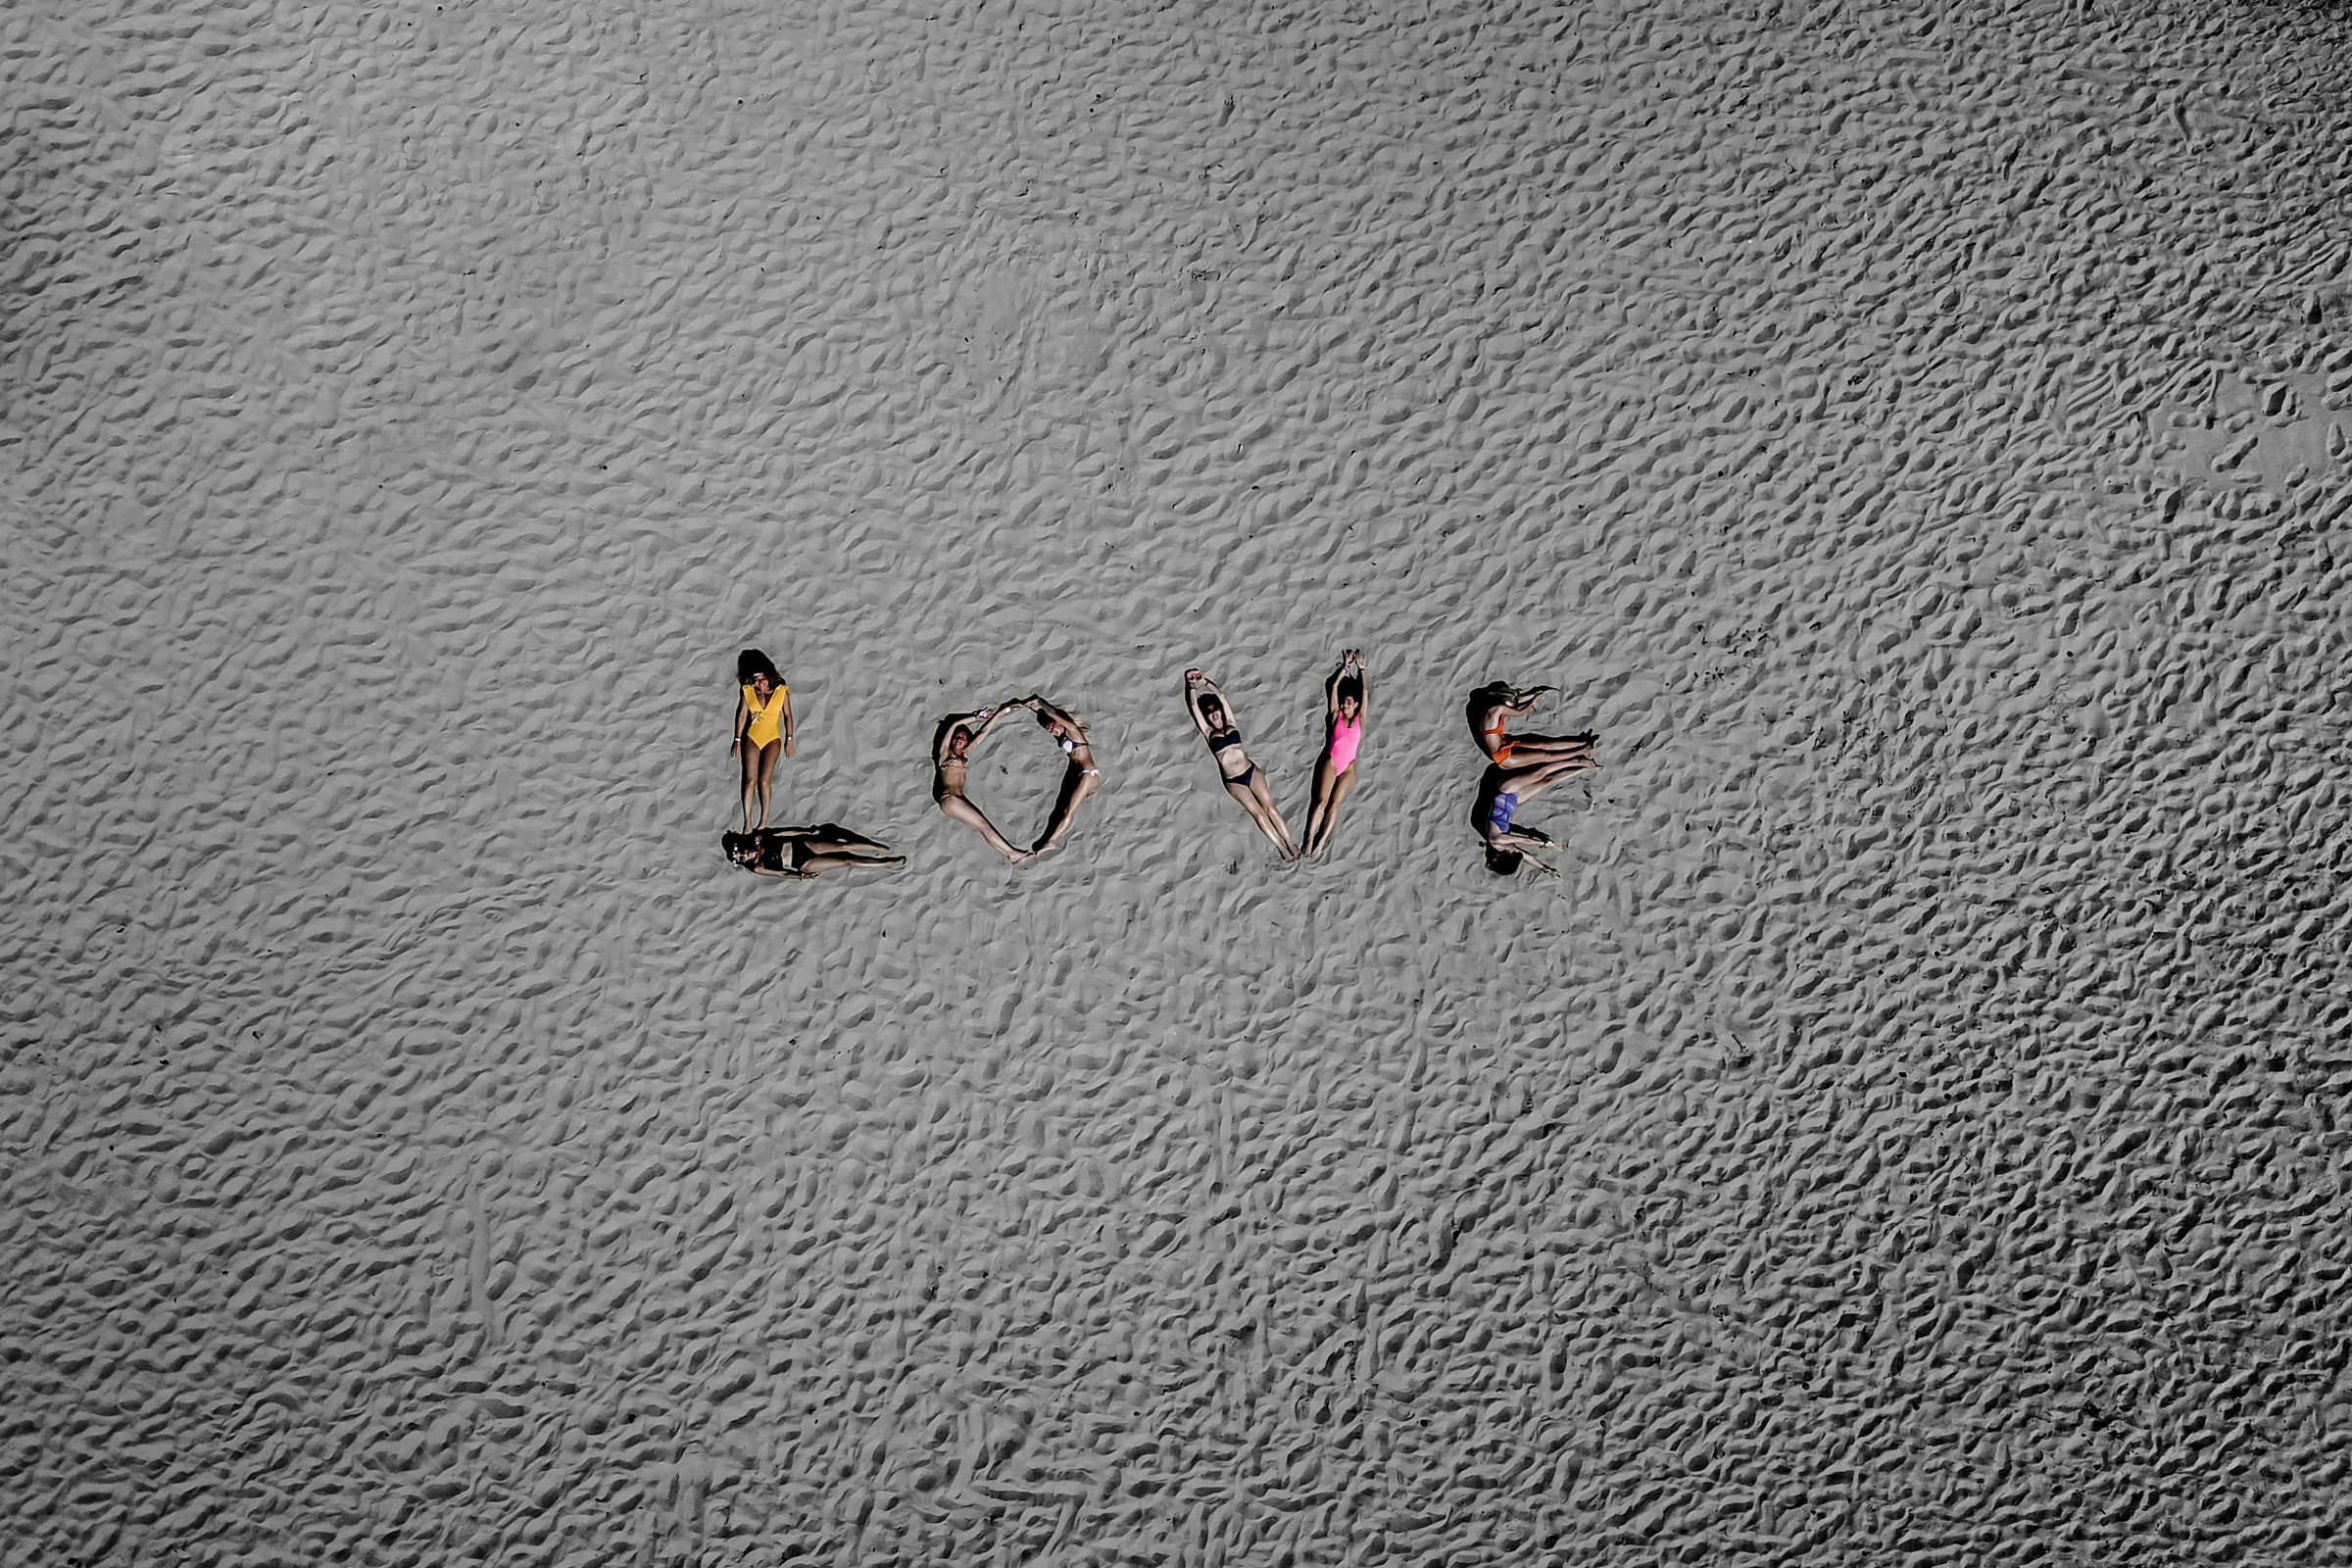 Wedding party spells out Love on sandy beach - photo by Julien Laurent Georges